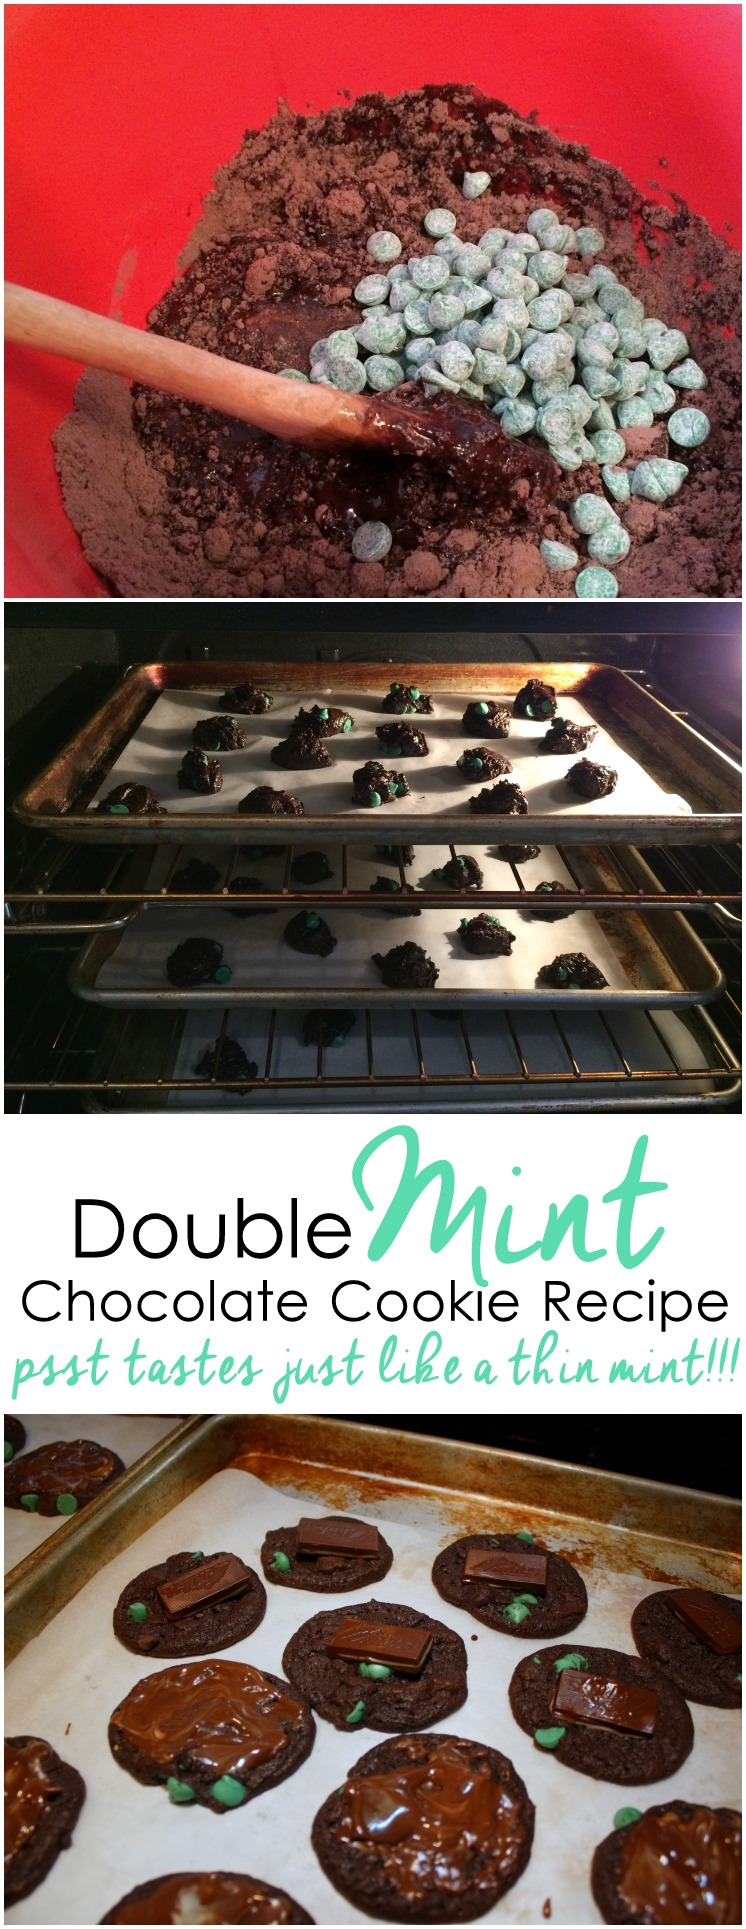 SO good. We make these all the time now. Just 4 ingredients and tastes just like girl scout thin mint cookies. Great chocolate dessert or treat recipe